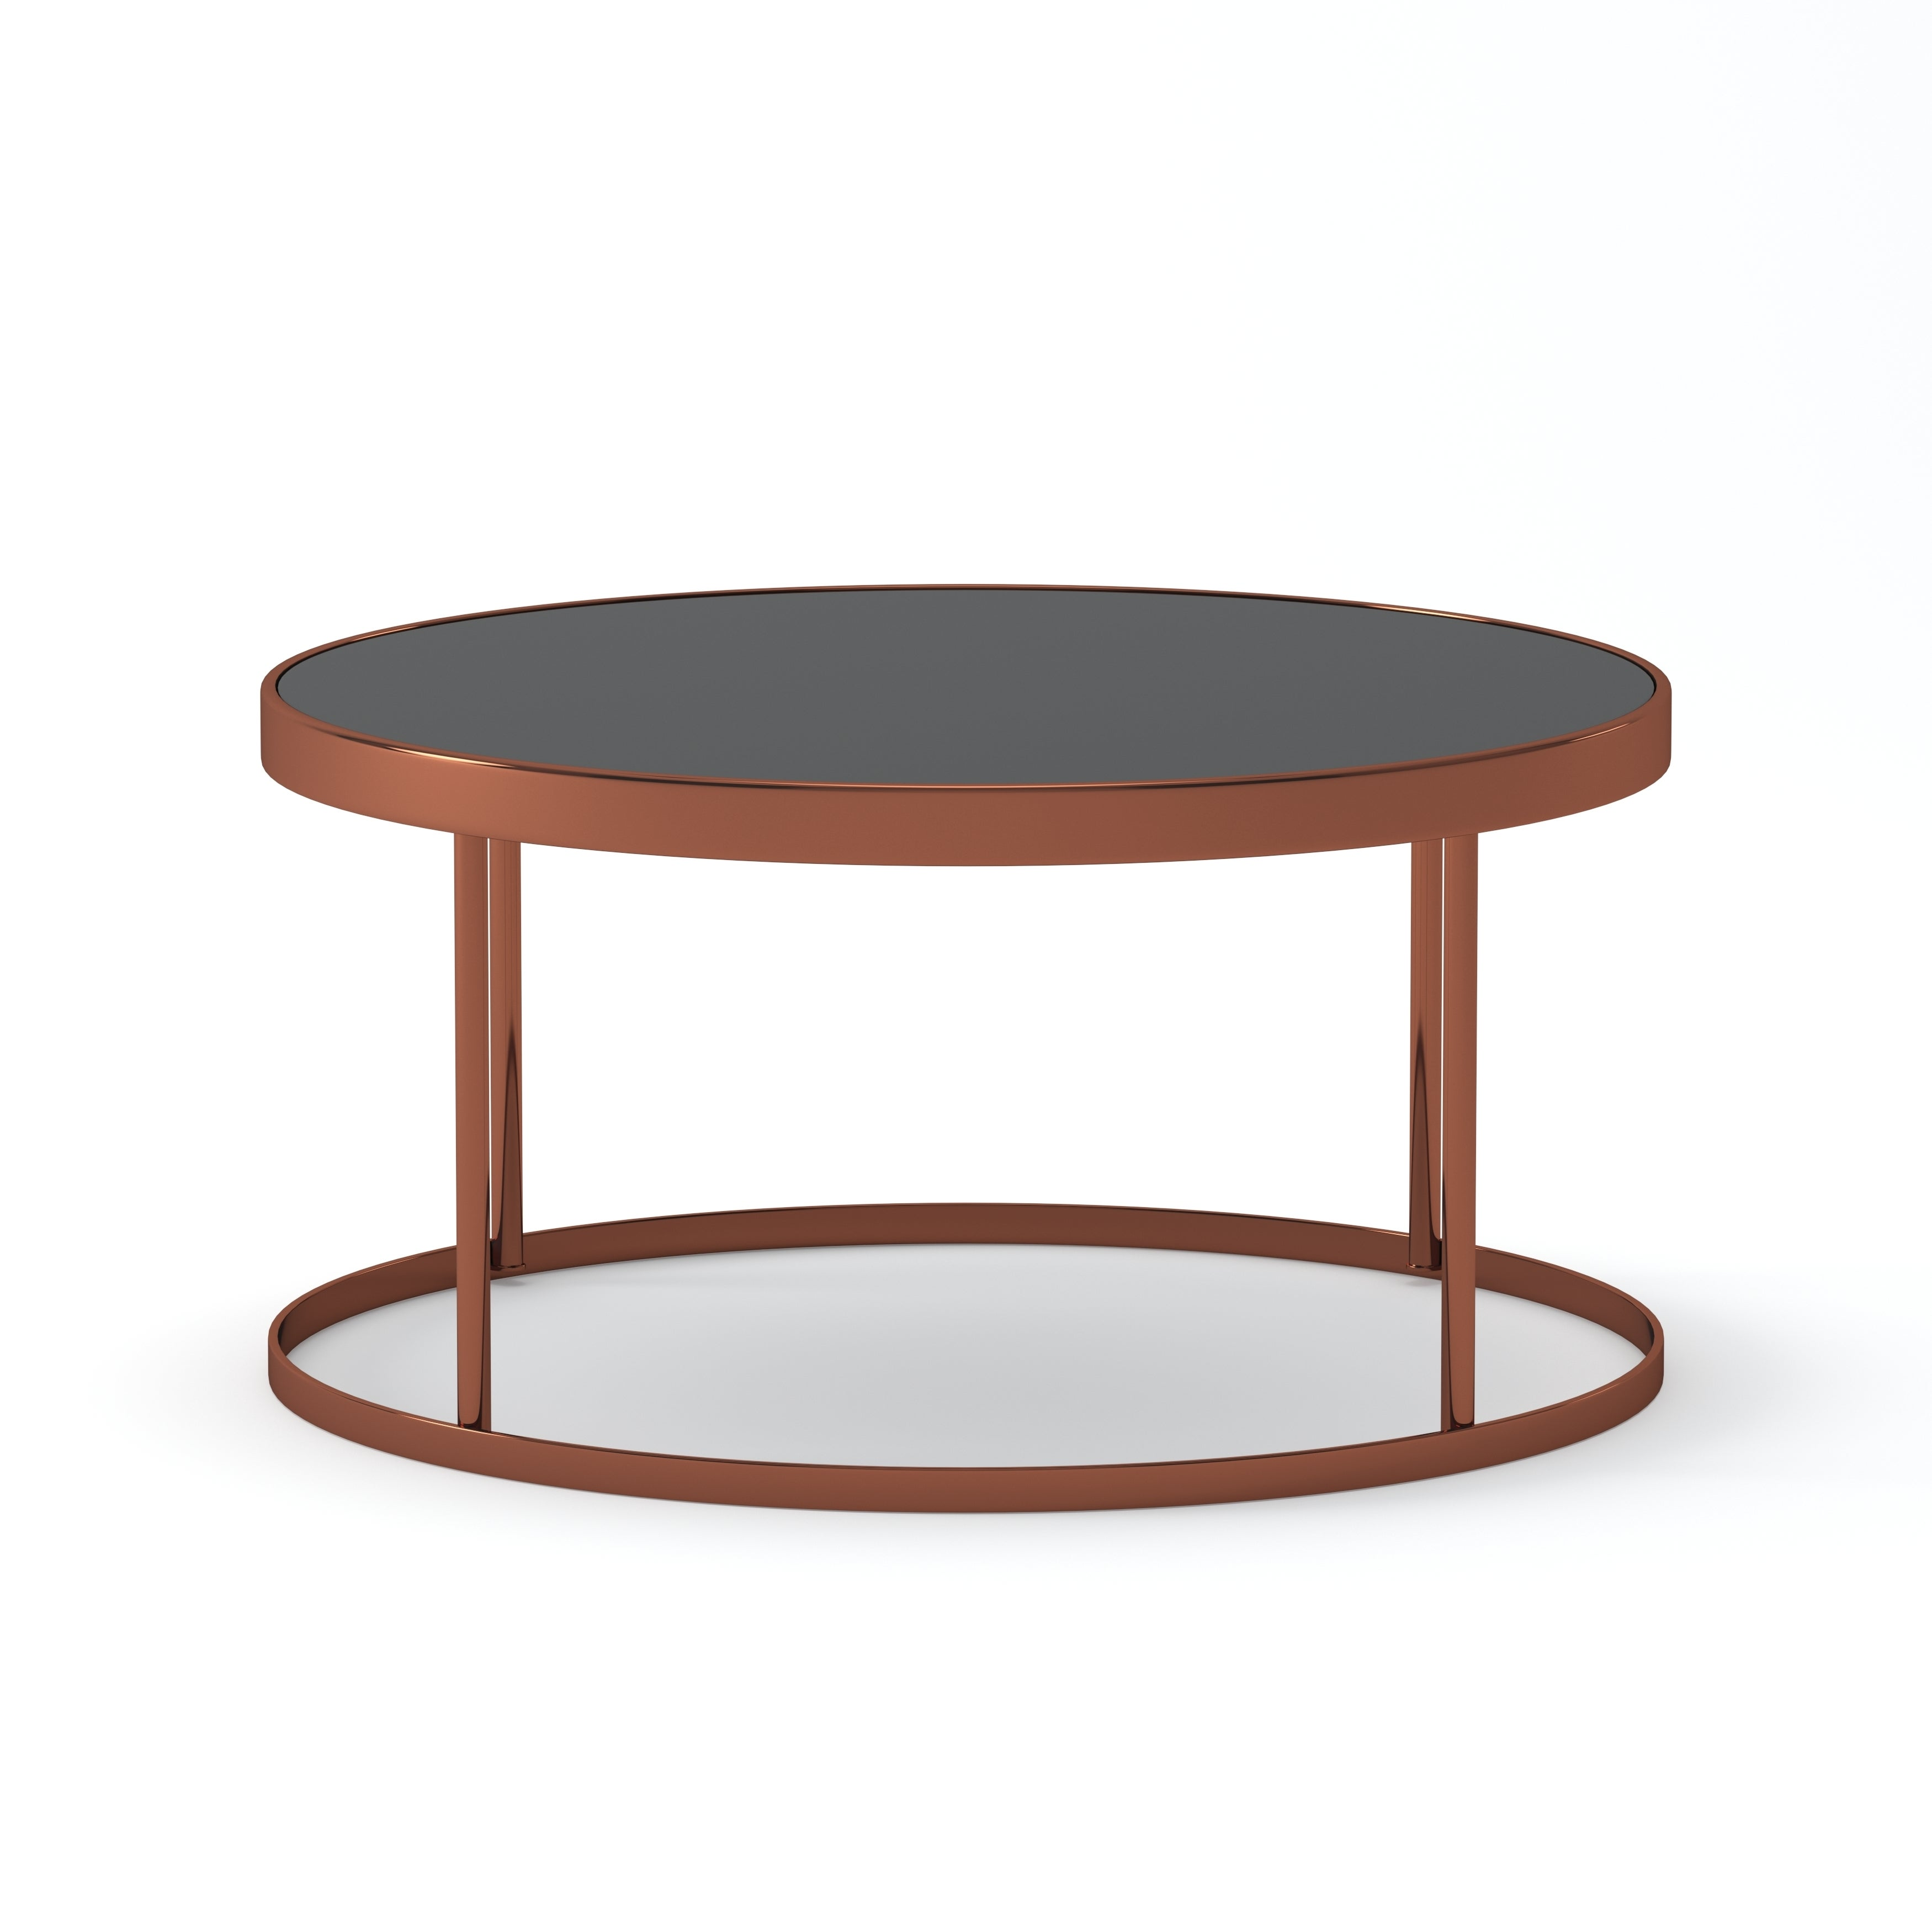 Furniture Of America Rosina Contemporary Rose Gold Black Mirrored Round Coffee Table Free Shipping Today 12453793